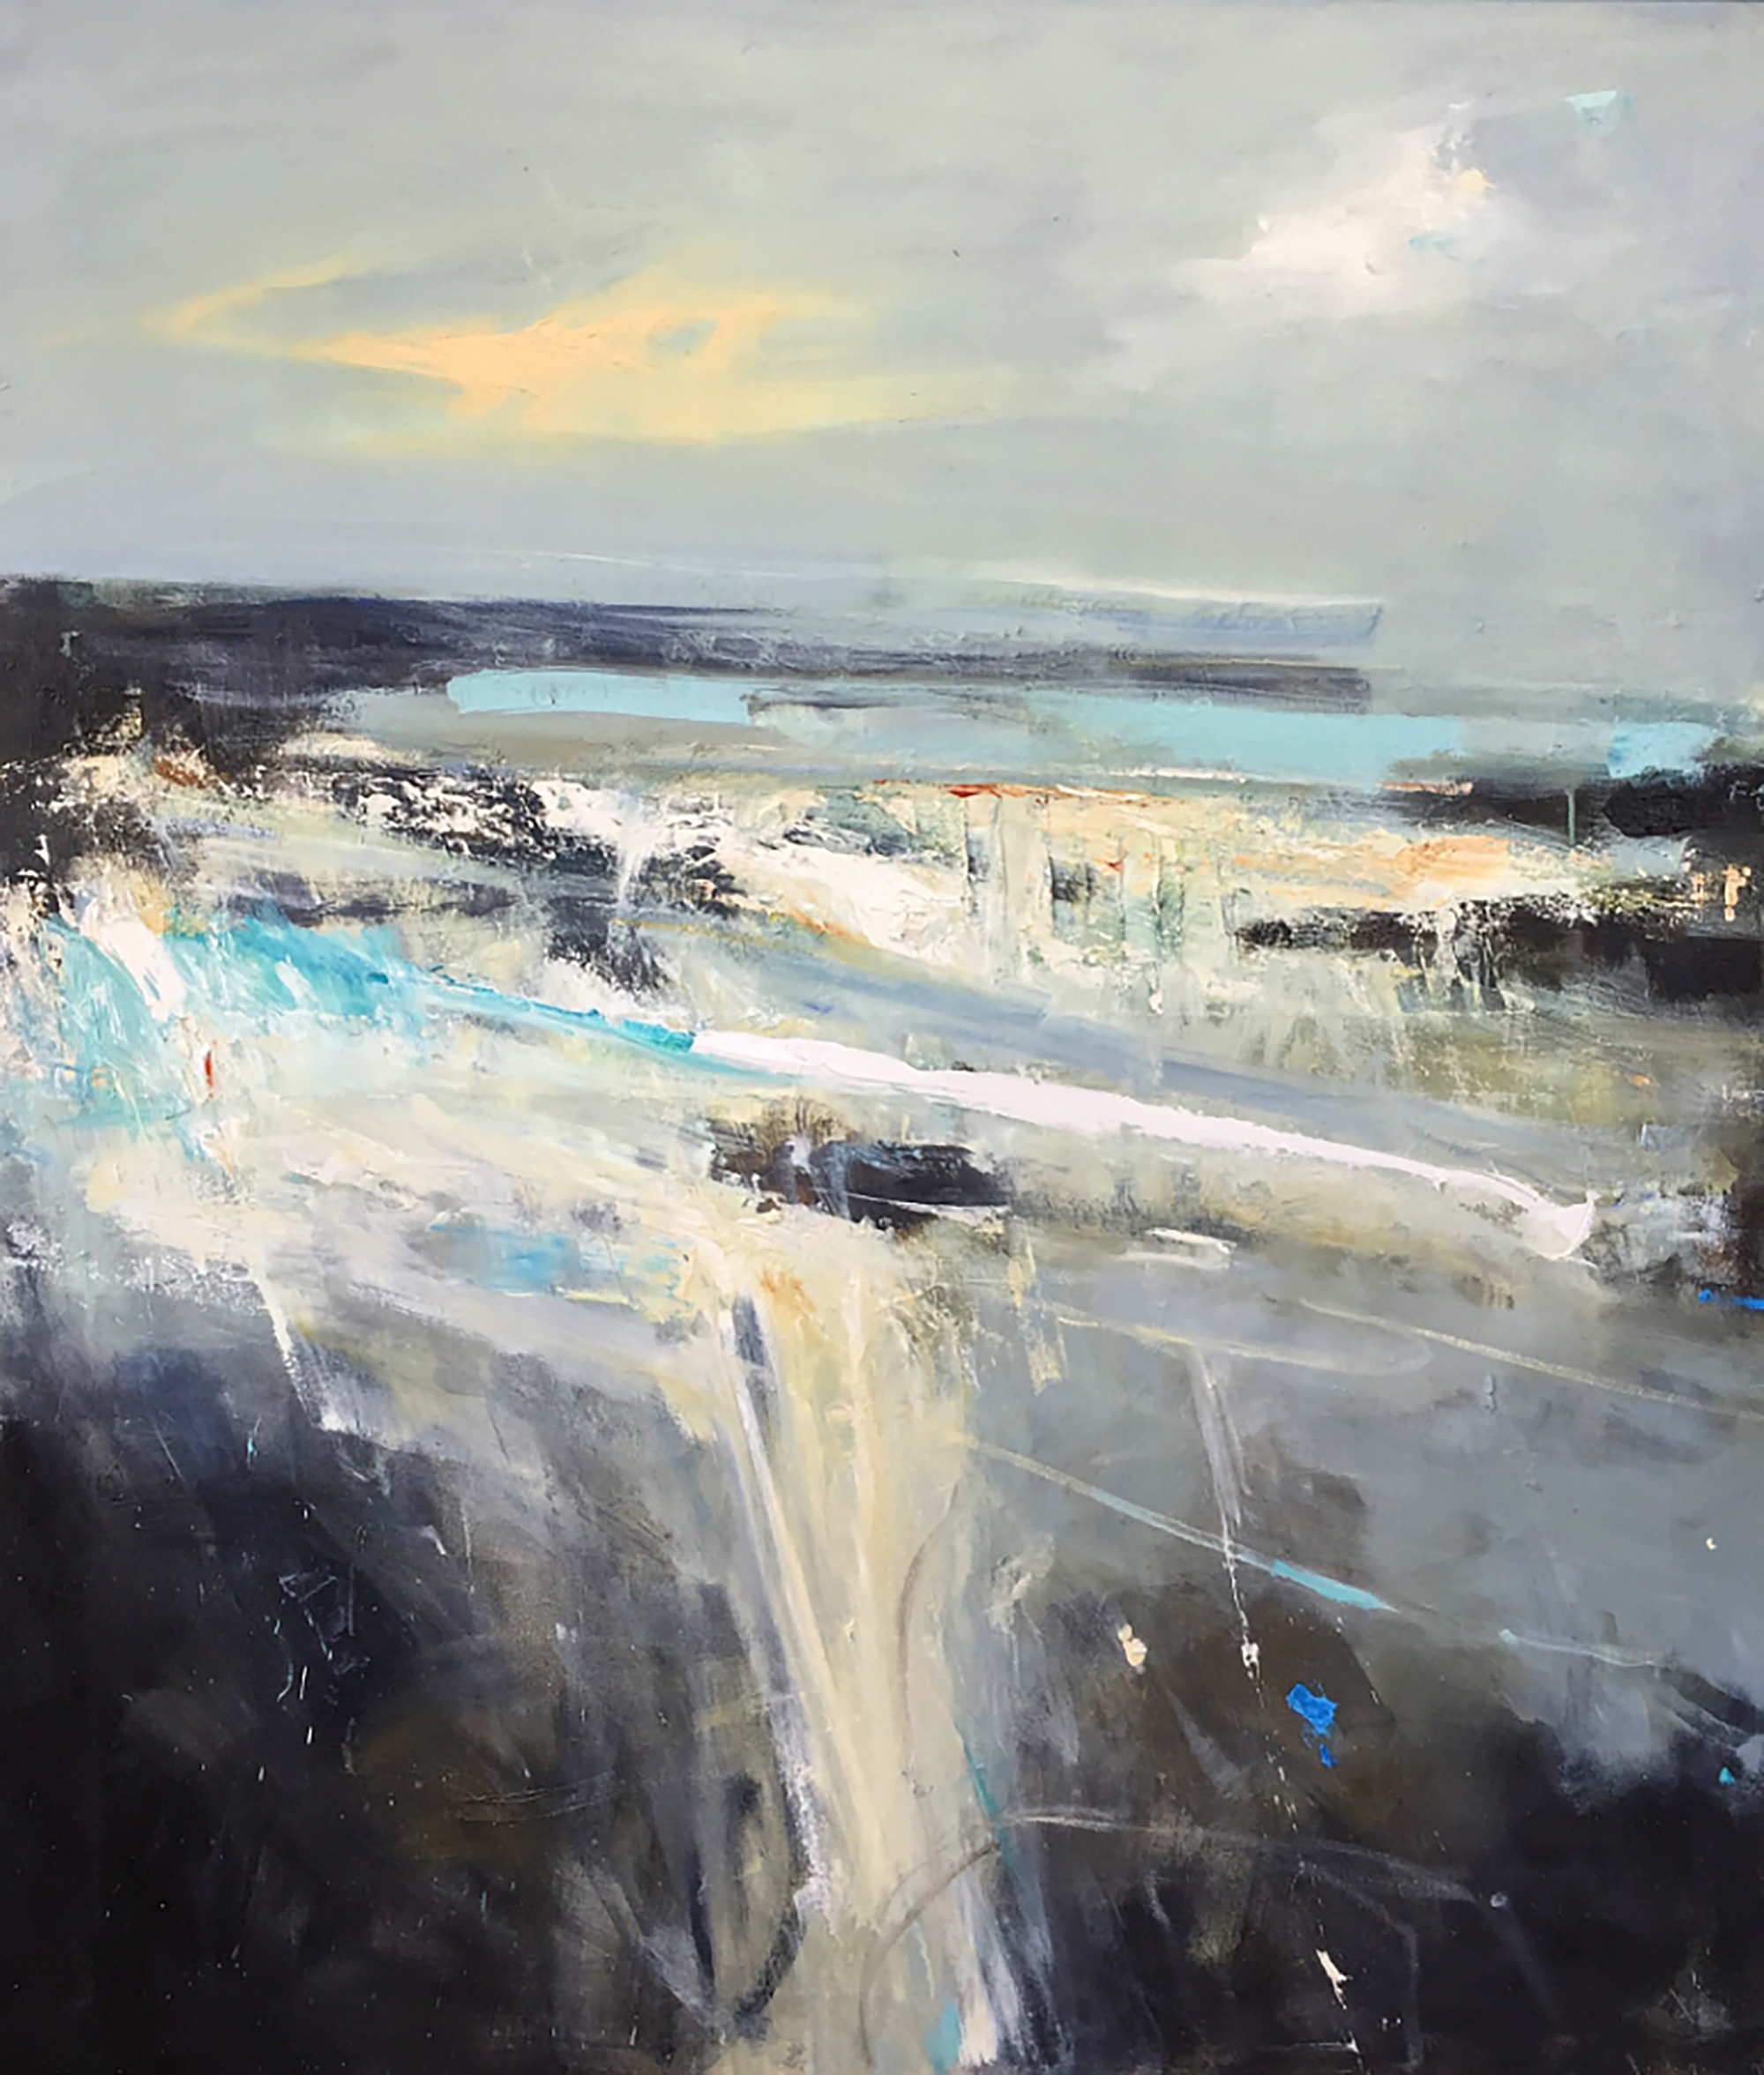 Between the Rocks,Sennen .Oil-on-canvas.136 x 115cm  Sold